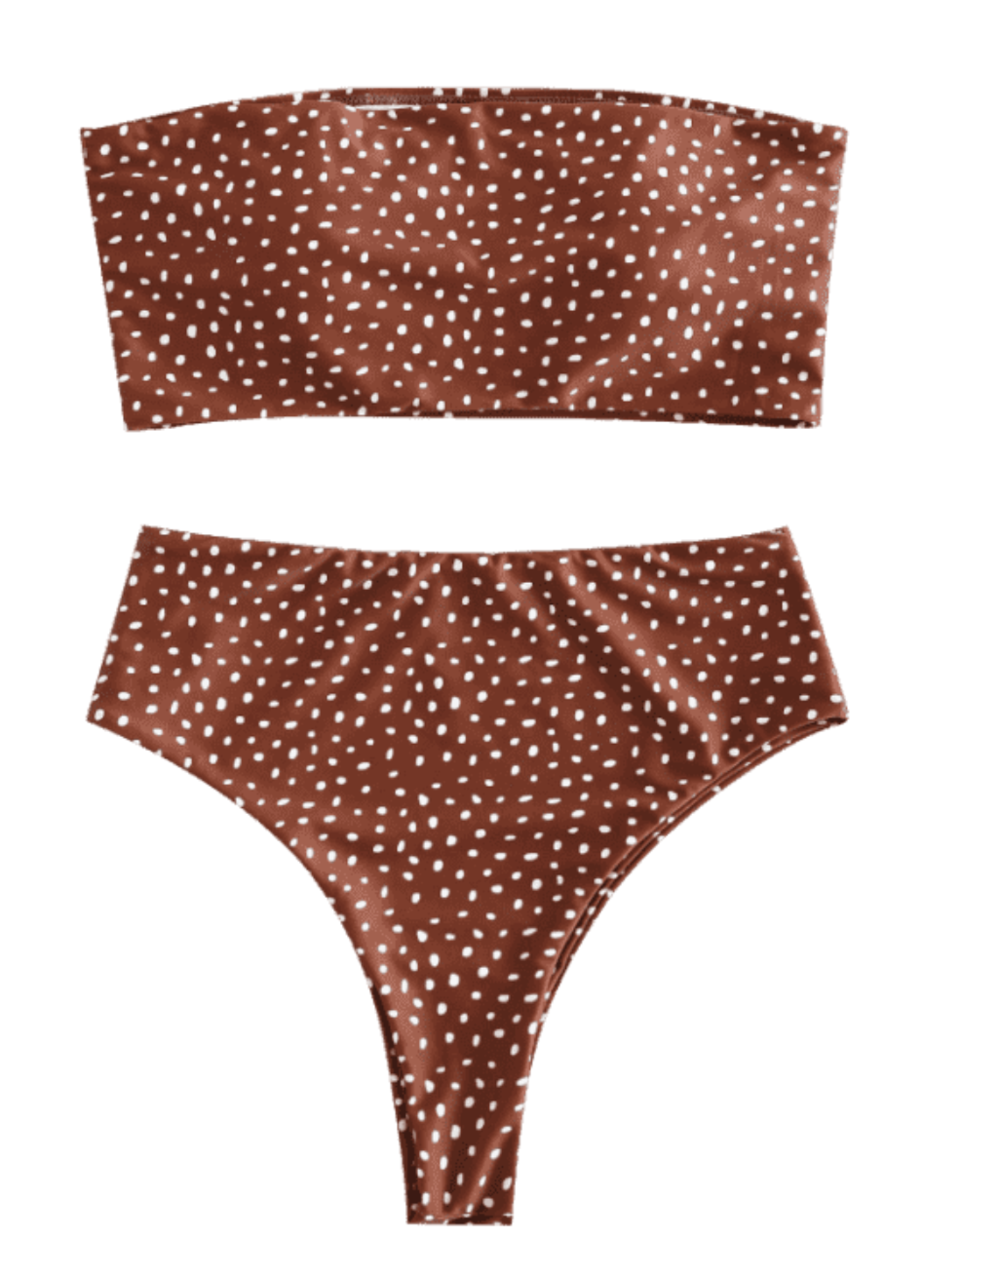 Spotted High Waisted Strapless Bikini - Light Brown | Honeymoon Bikinis | Miranda Schroeder Blog